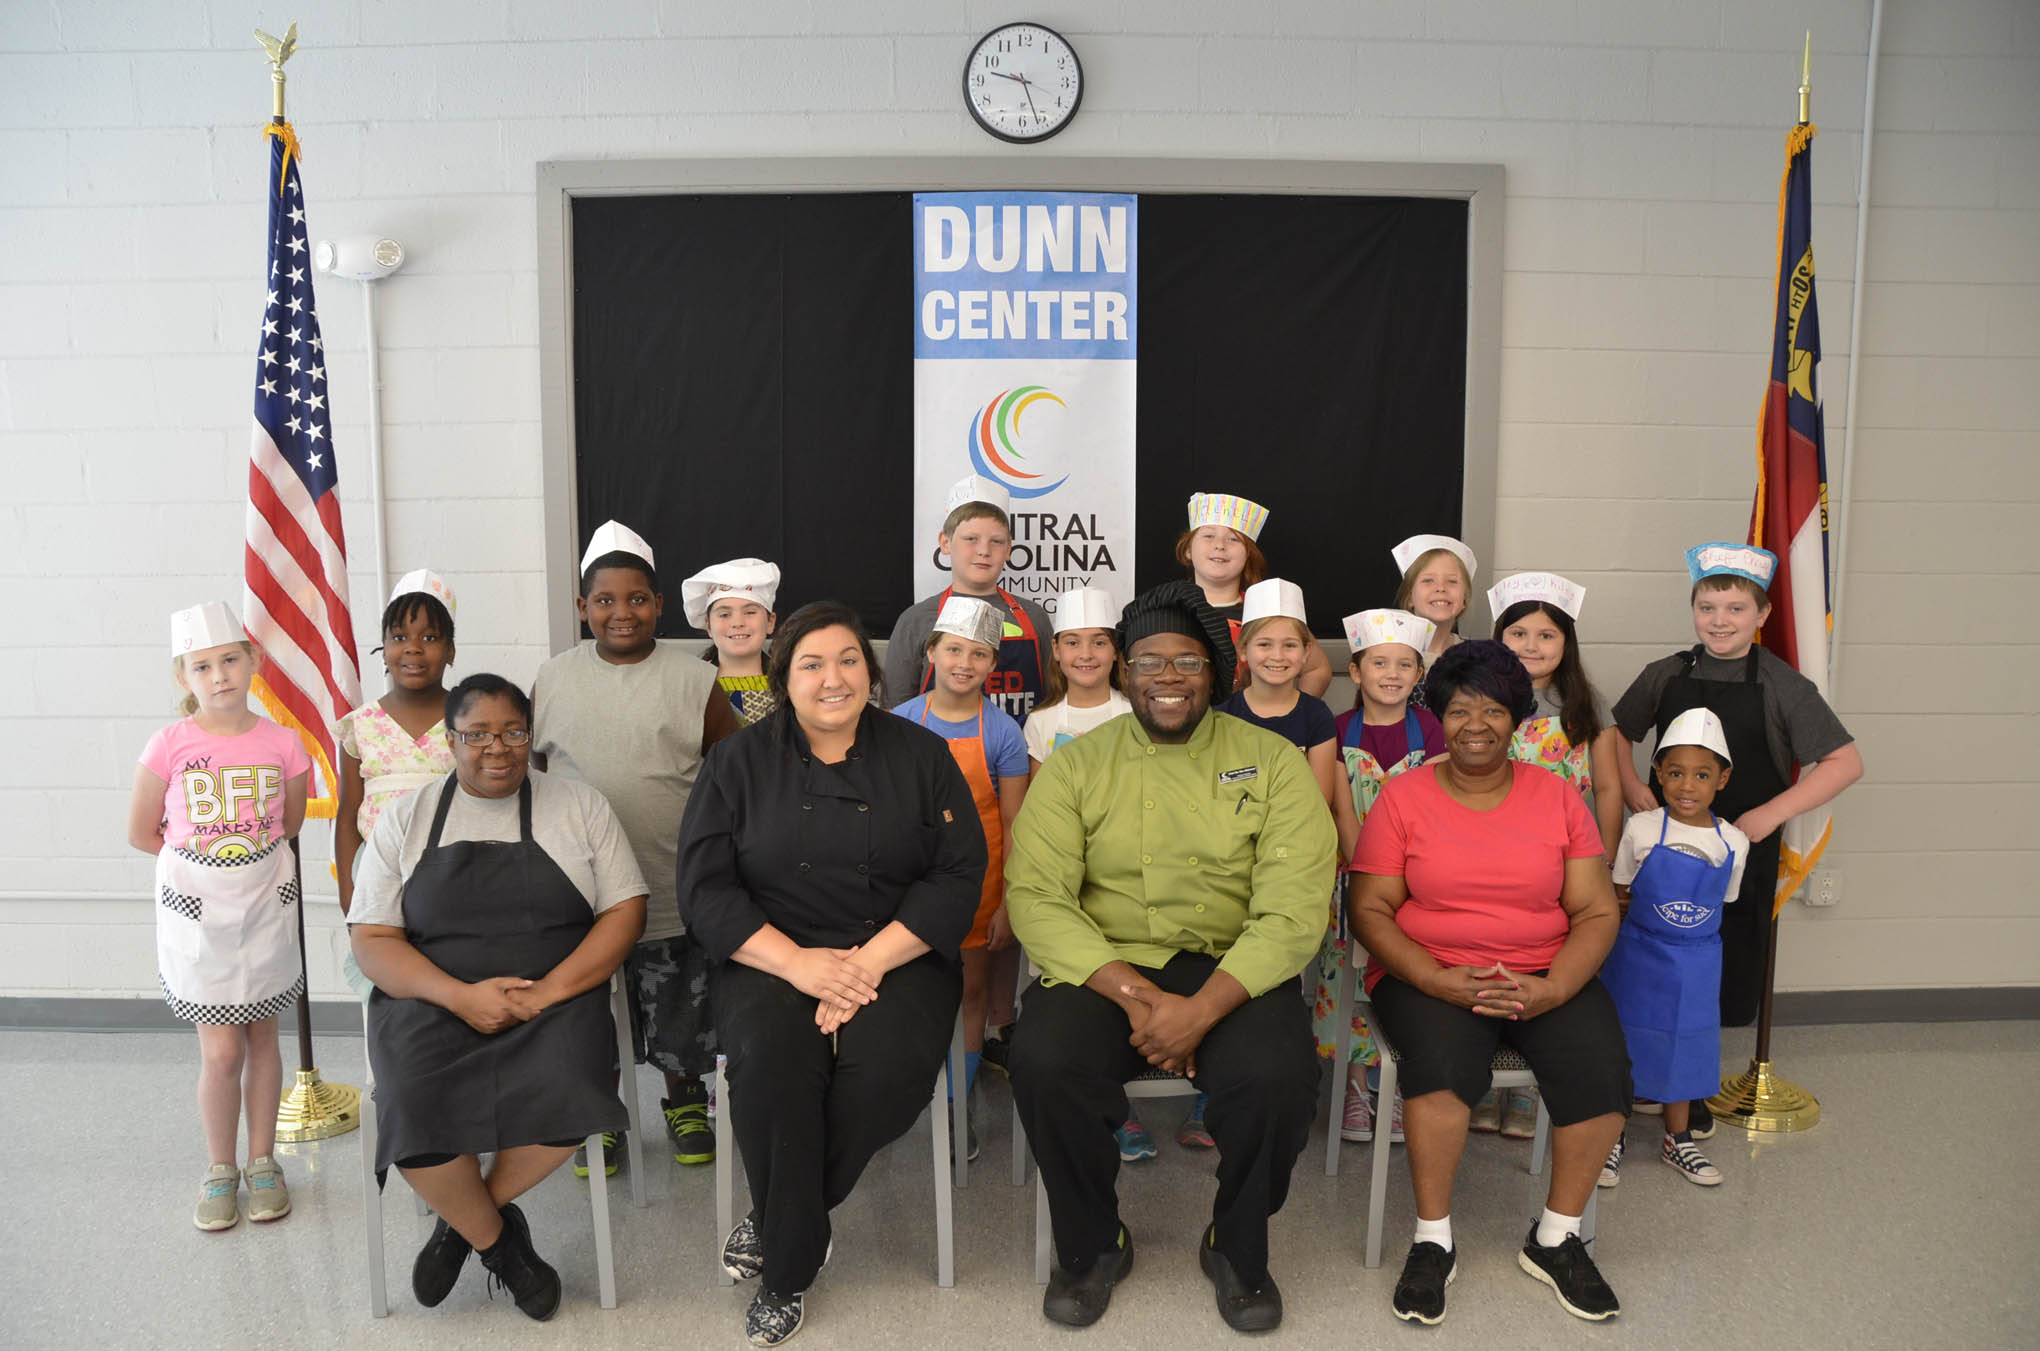 CCCC cooking camps allow kids to create